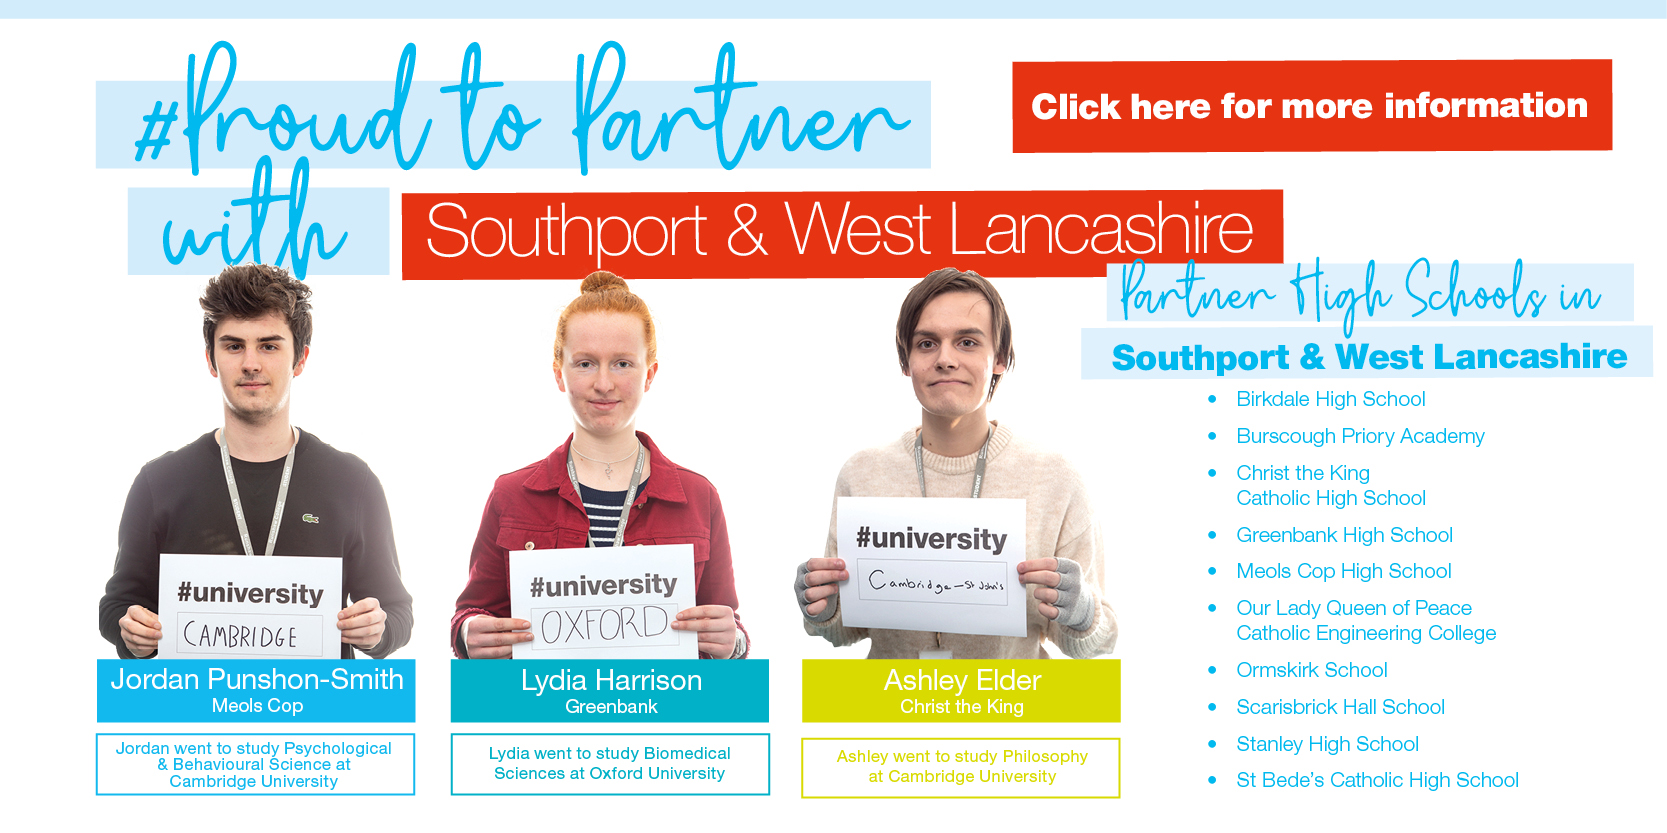 Proud to Partner with Southport & West Lancs... Click HERE for more information Thumbnail